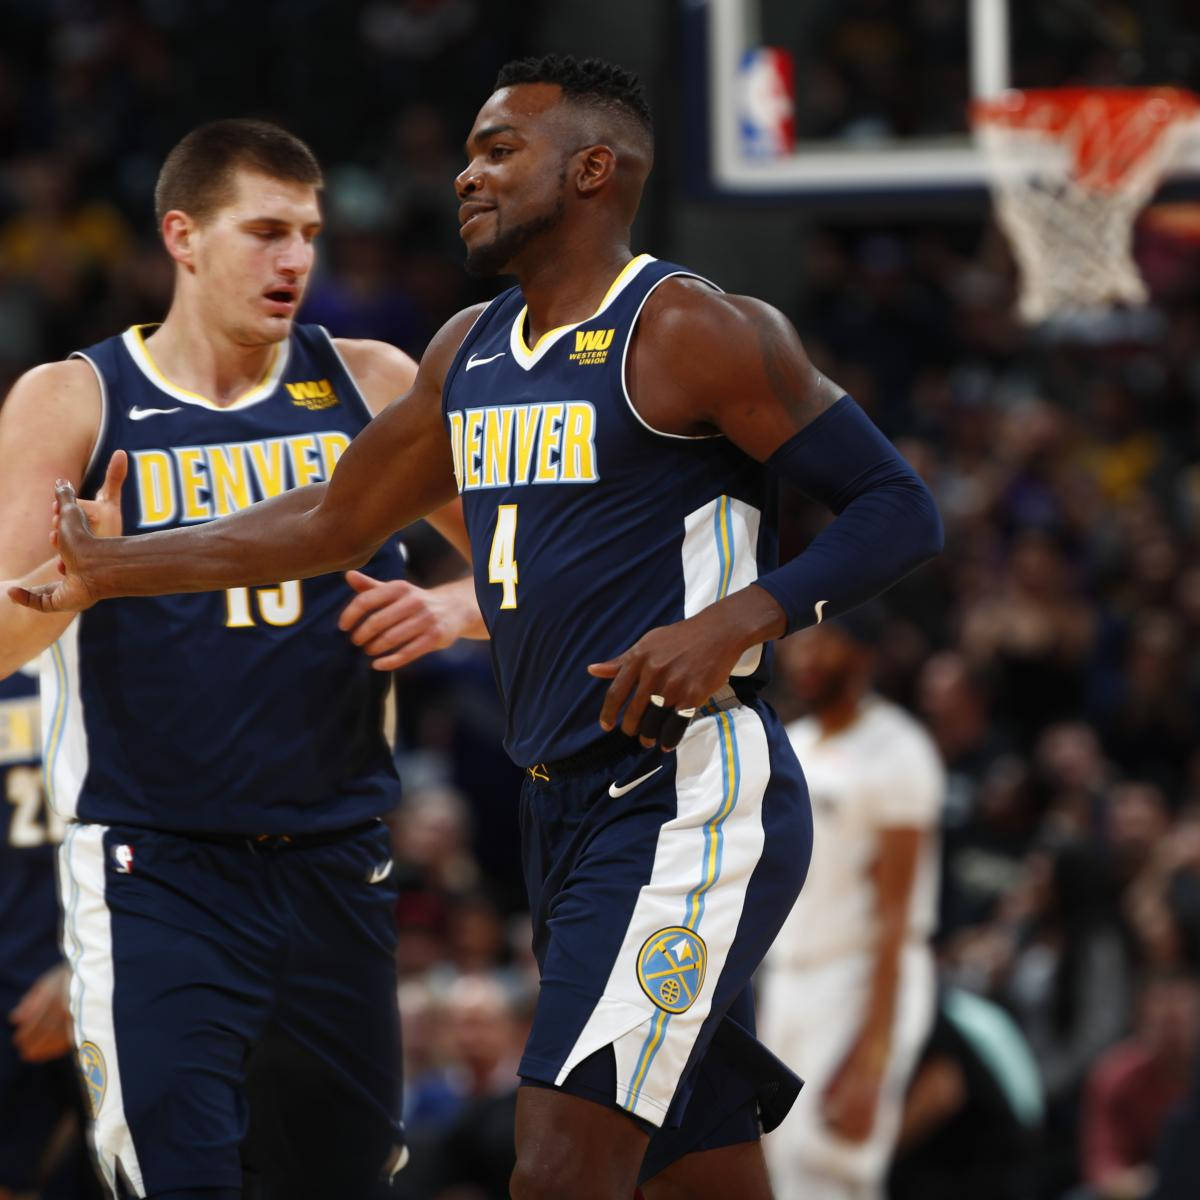 Denver Nuggets Basketball Reference: NBA Rumors: Paul Millsap 'Nudged' Nikola Jokic Into 'Alpha